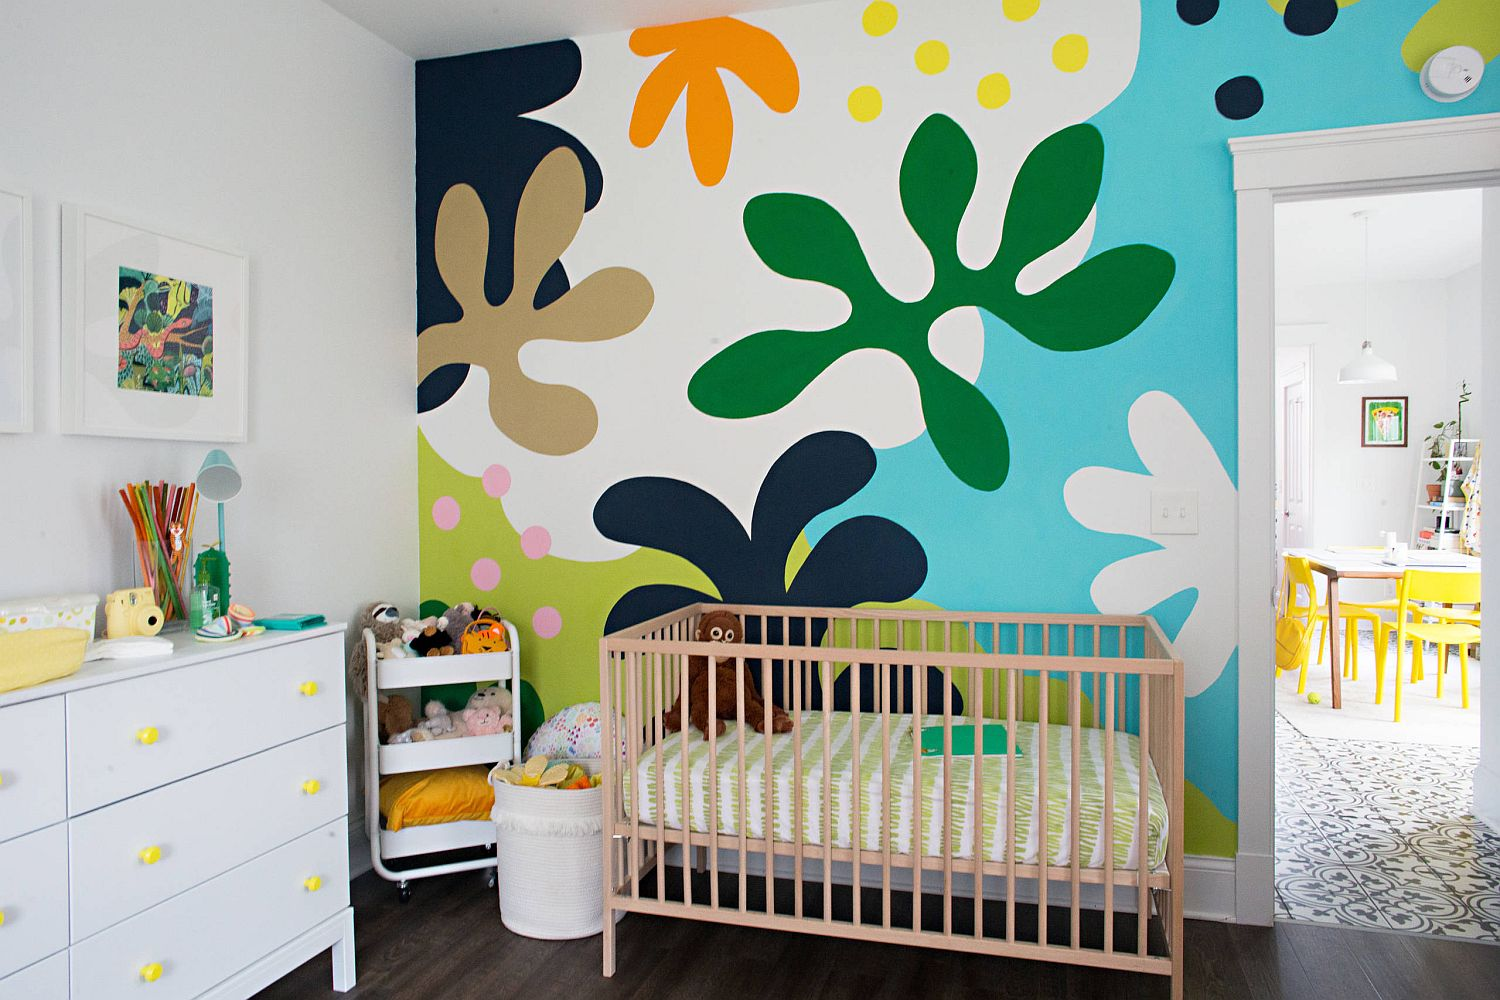 Creating a brilliant and vivacious backdrop for the small eclectic nursery